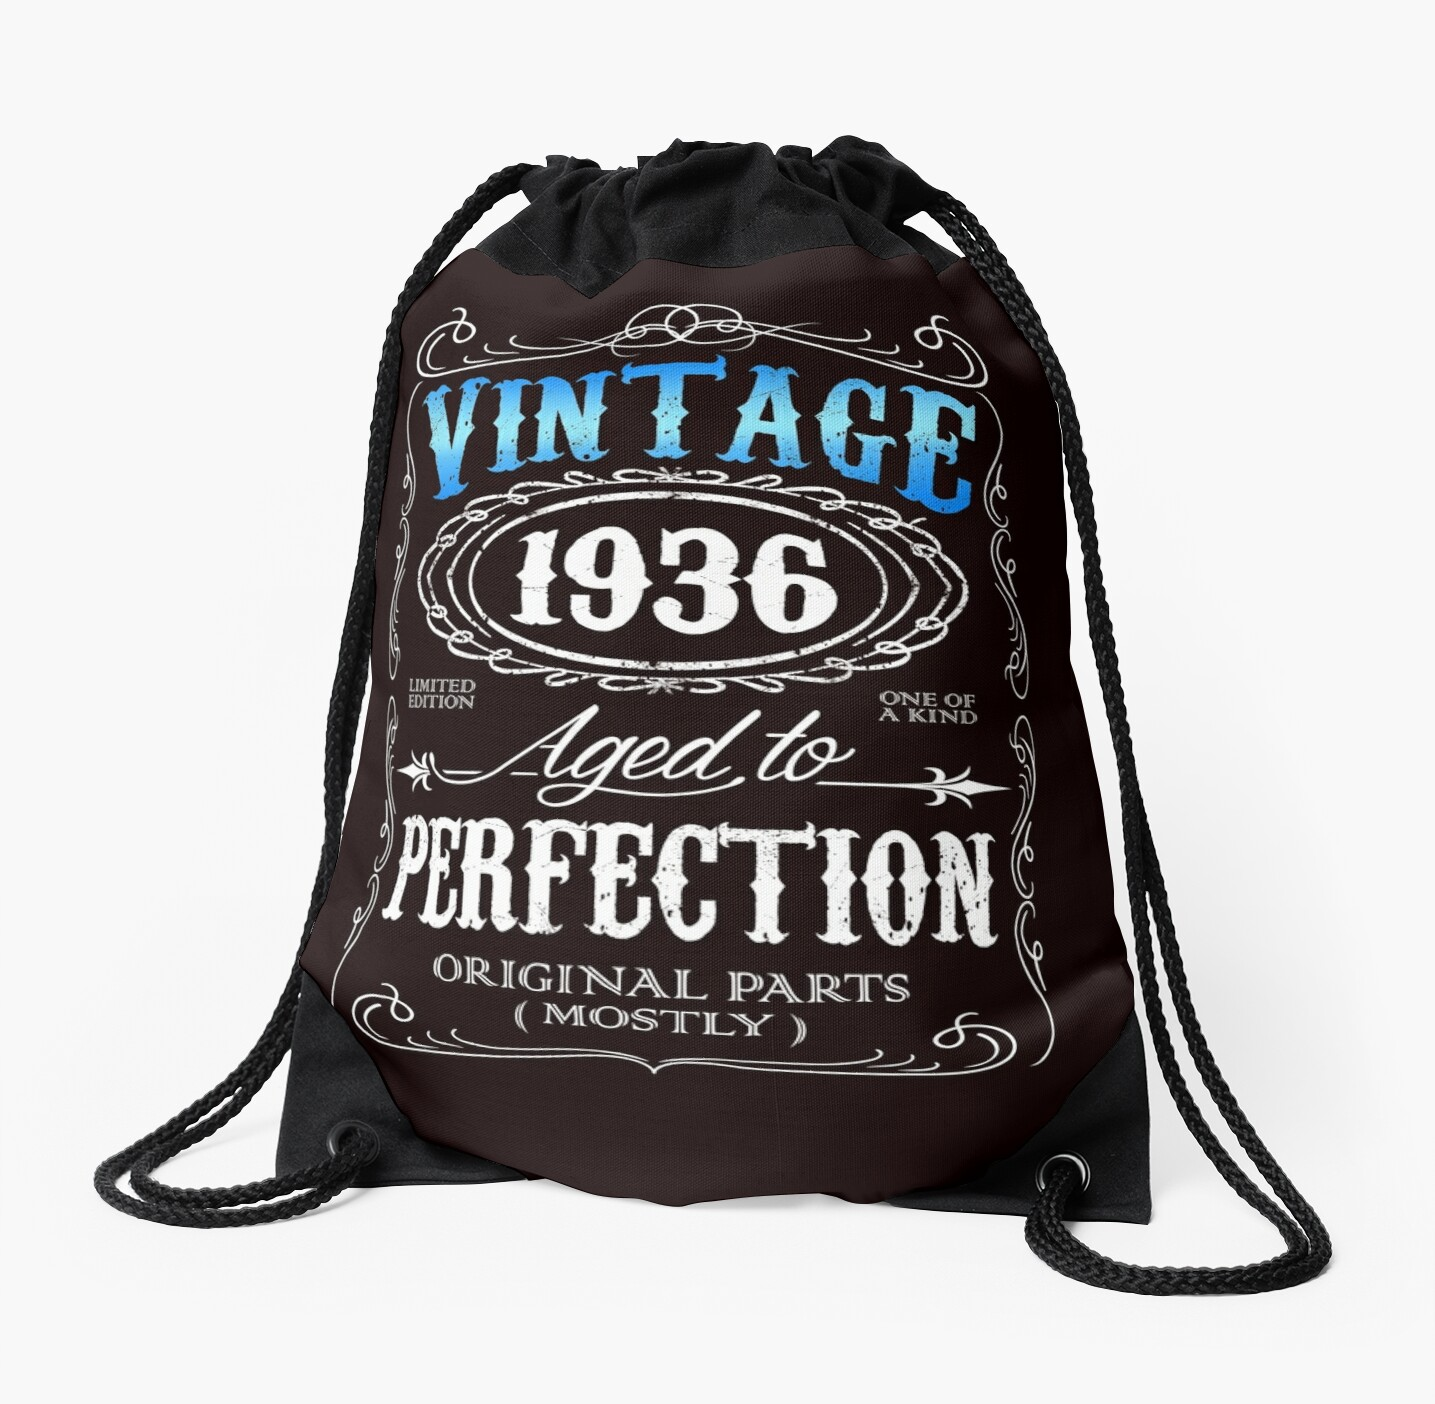 80th Birthday Gift For Men Vintage 1936 Aged To Perfection 80 By Artyrepublic